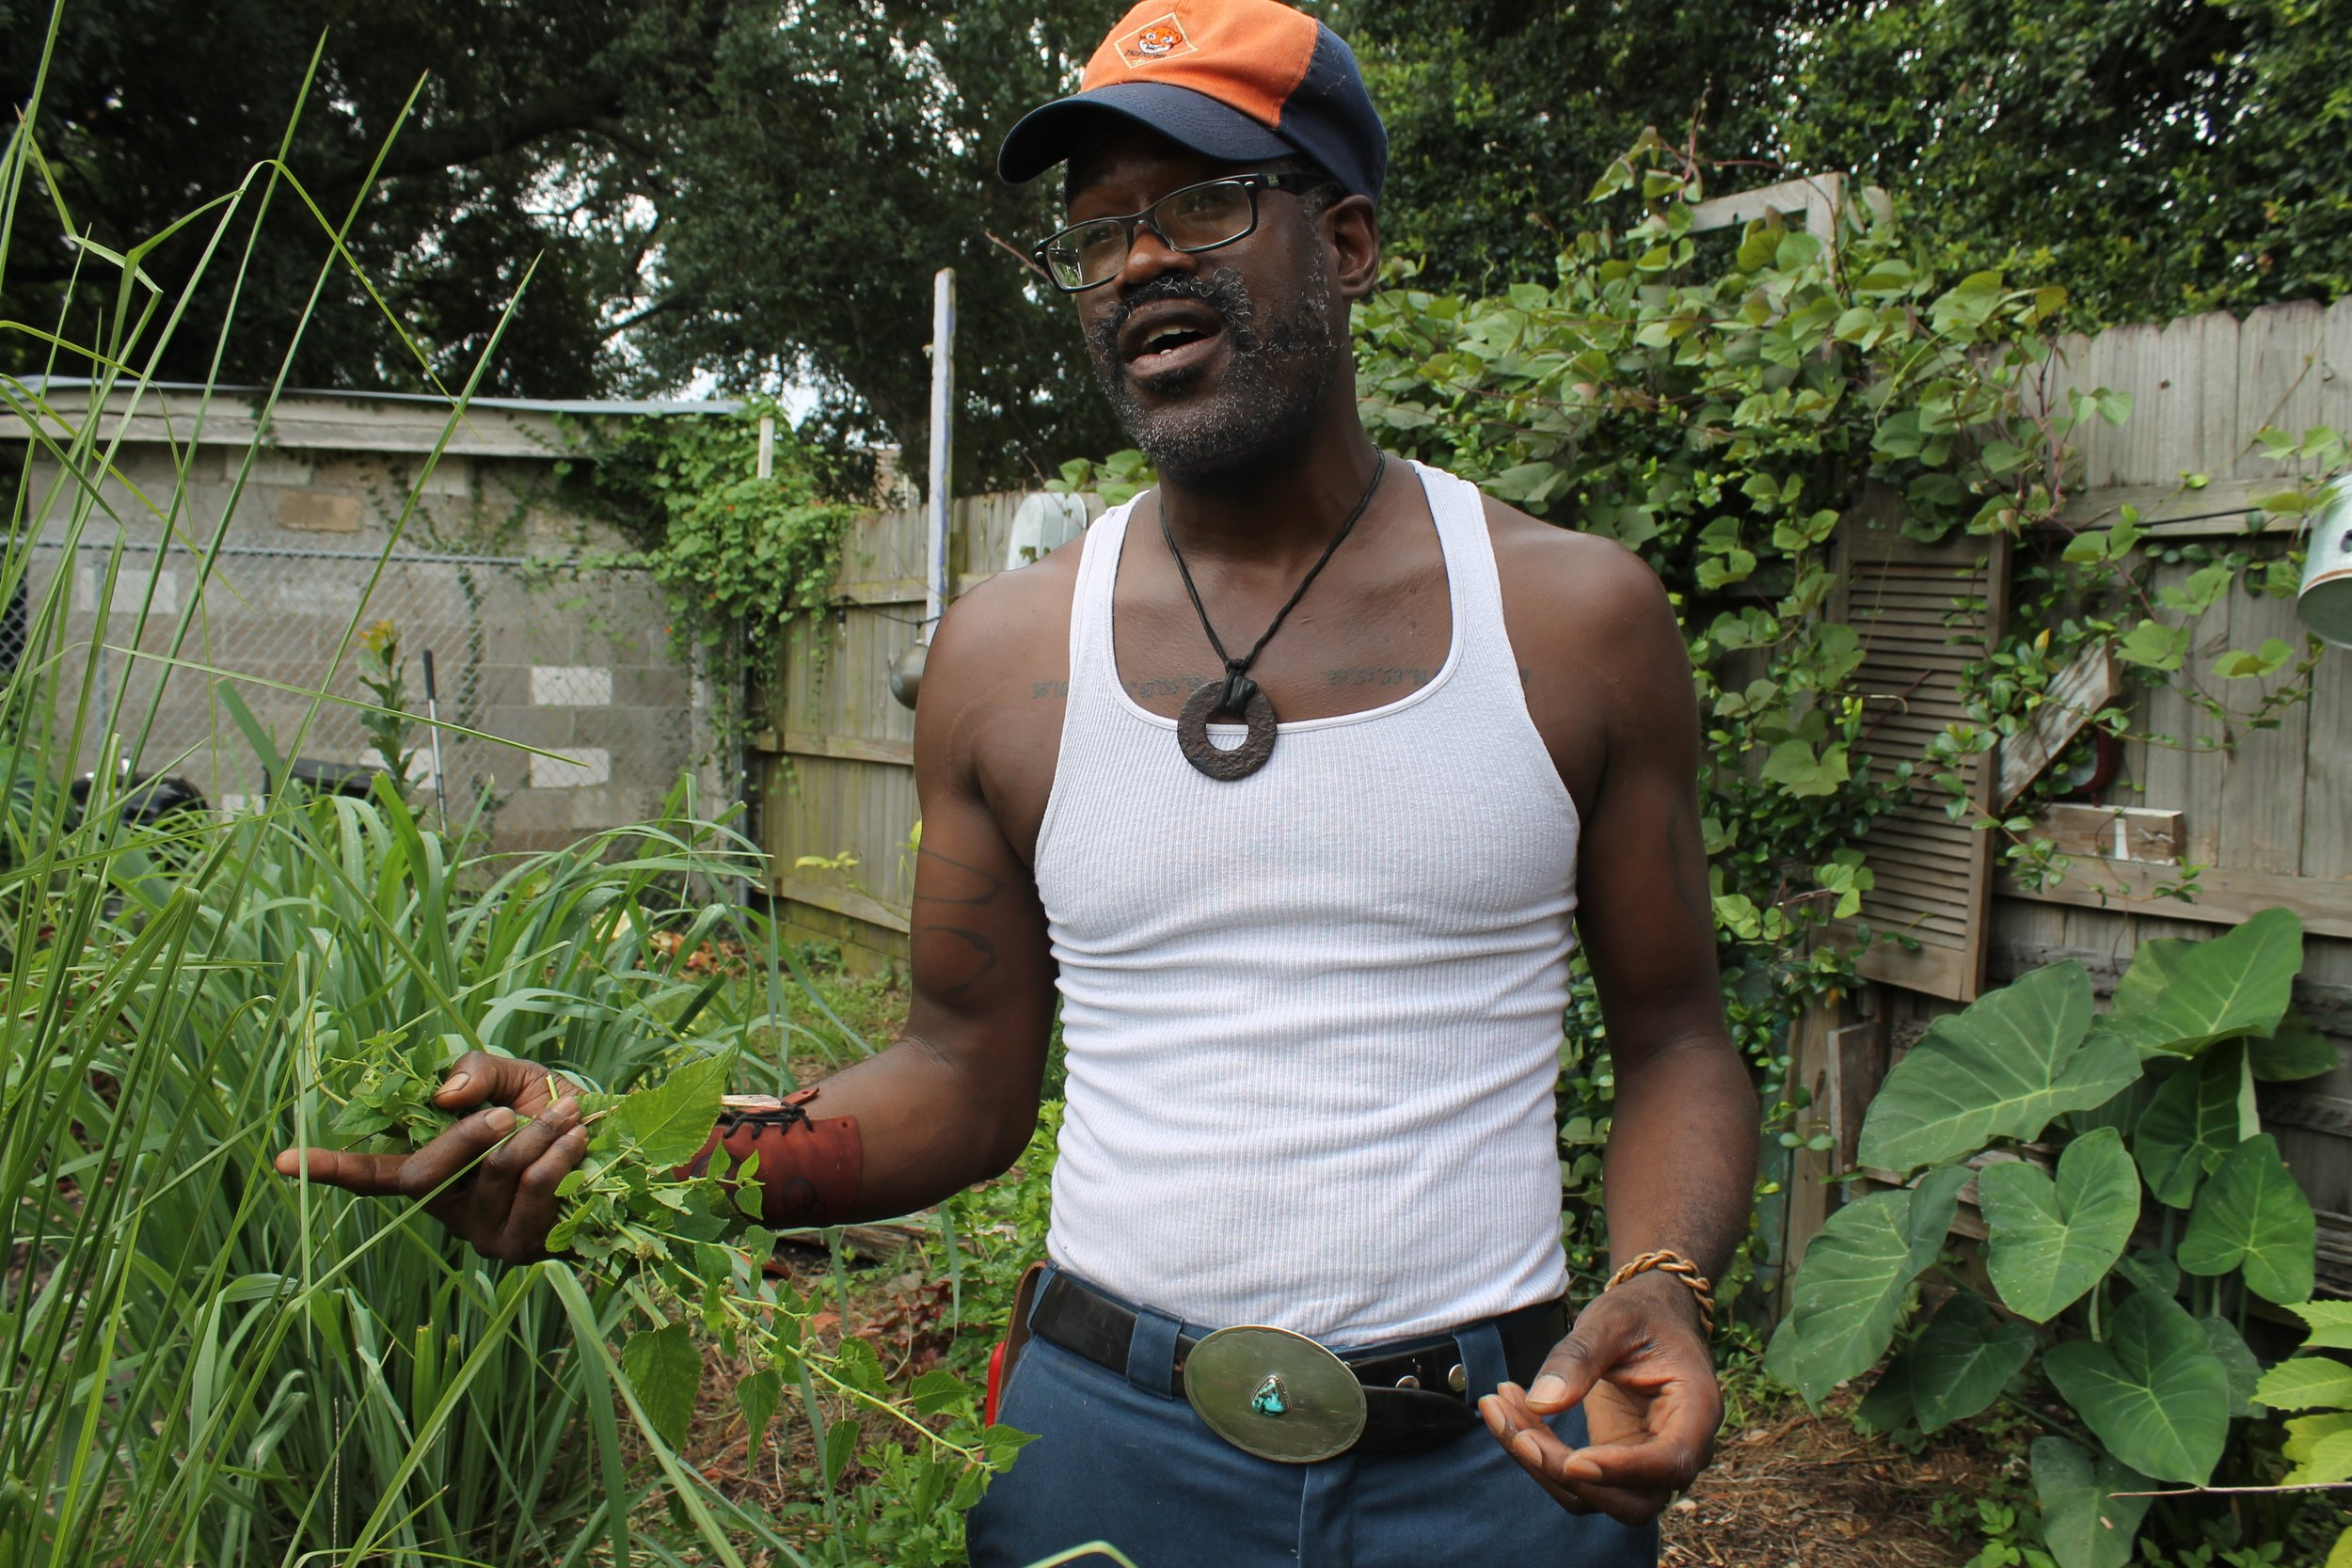 Rahn_Collection of Collections_Black People with Plants.jpg